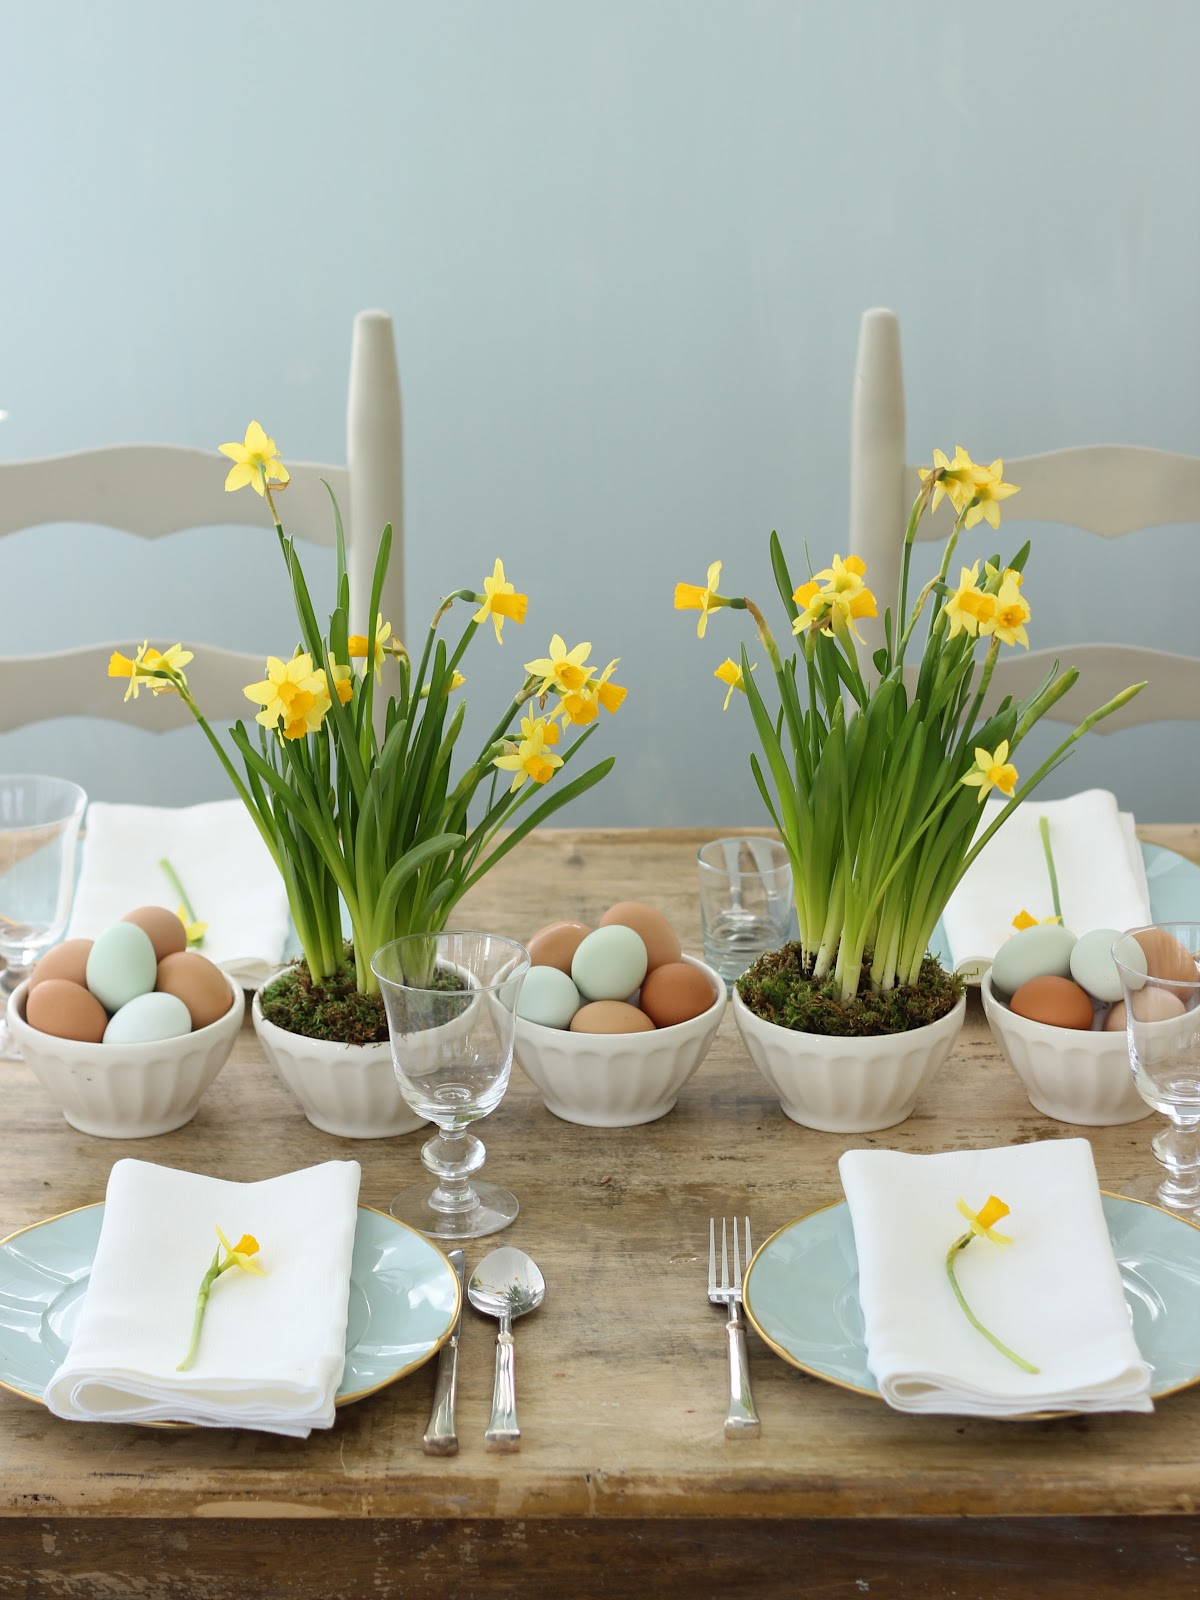 Jenny steffens hobick spring easter centerpieces Brunch table decorations